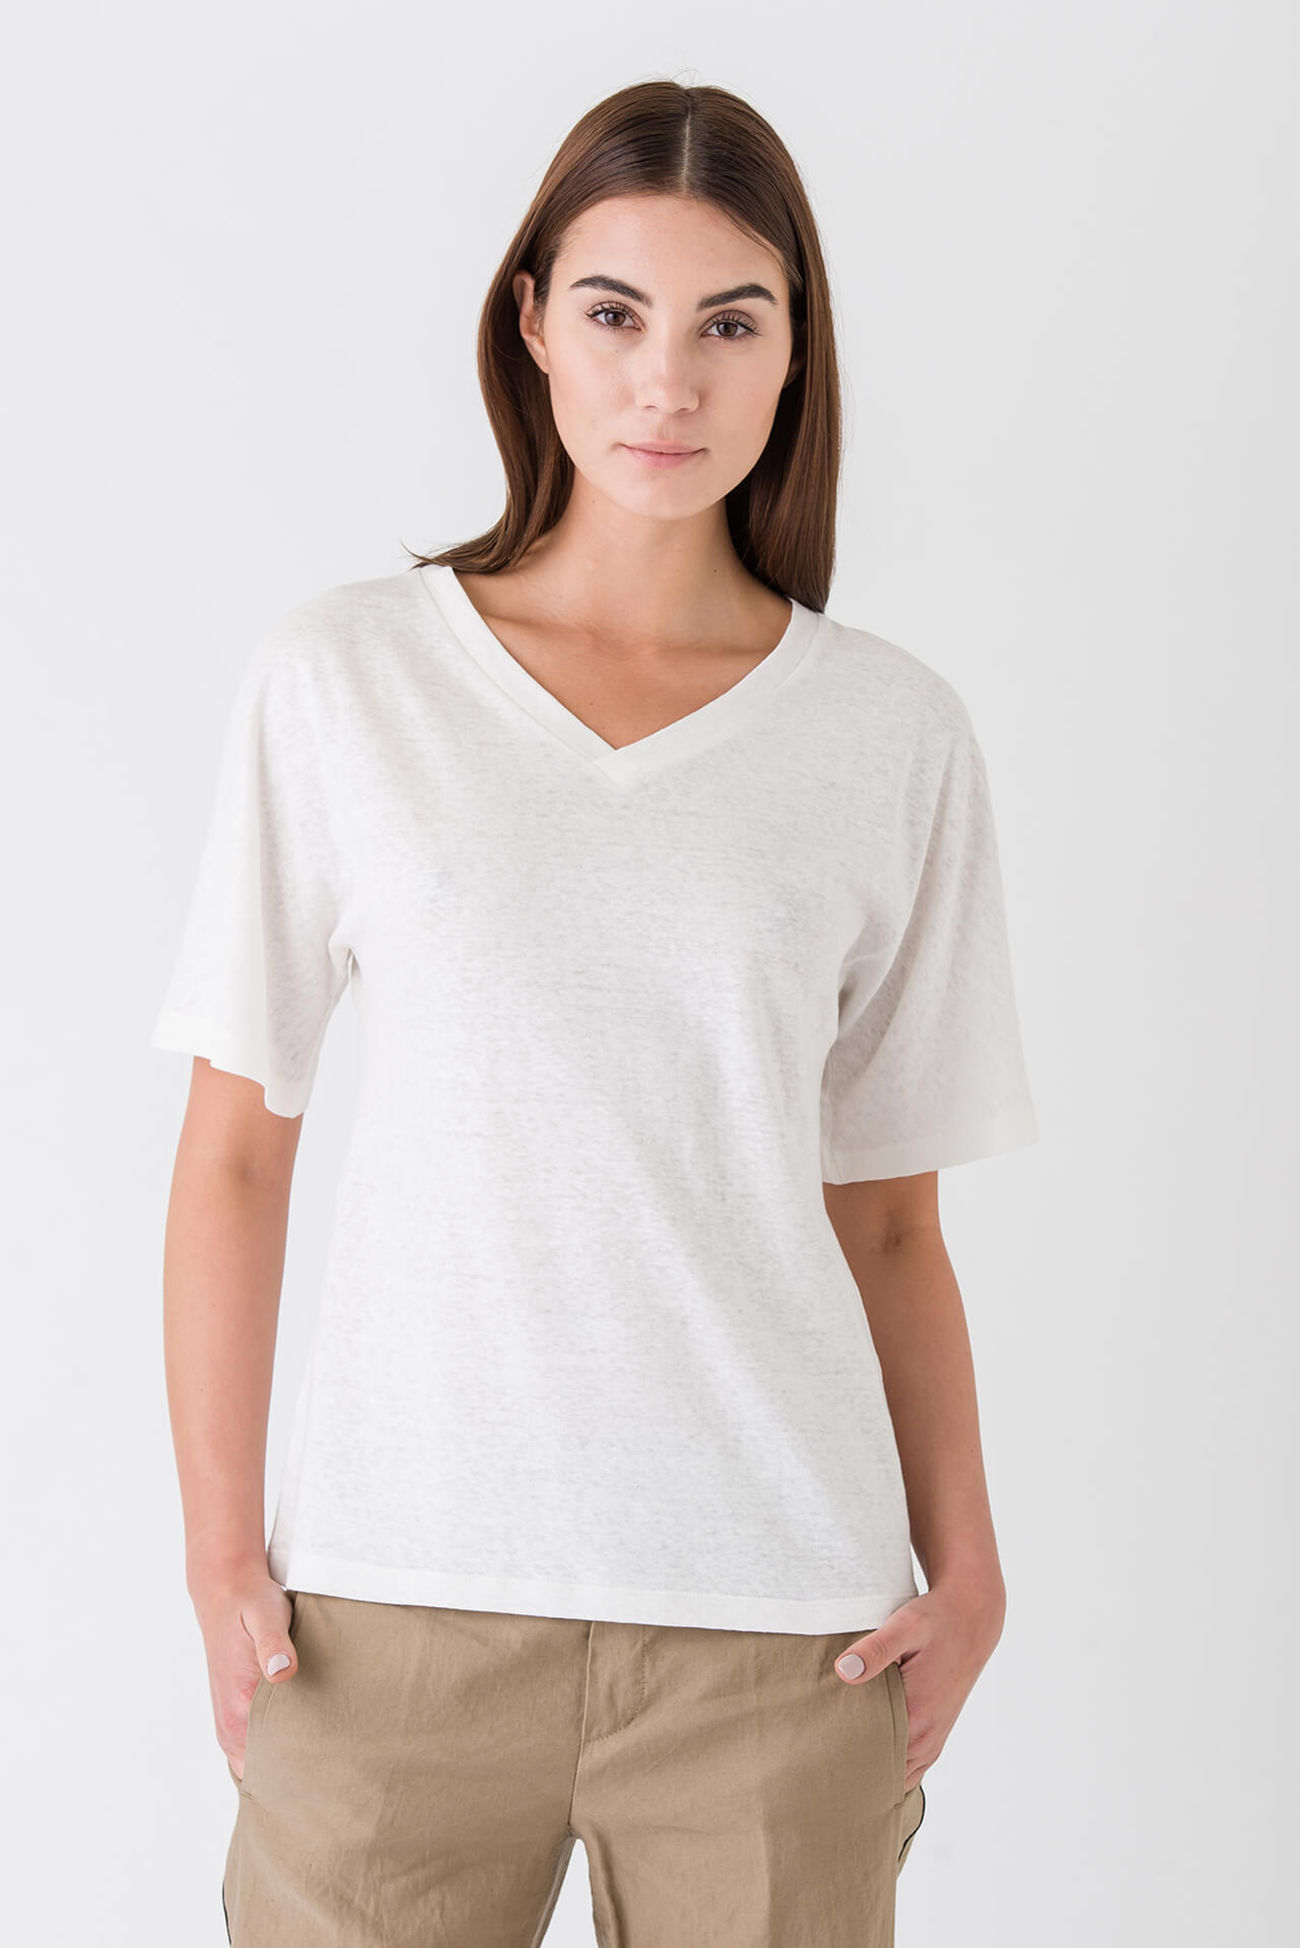 Exquisite basic shirt made of a linen blend